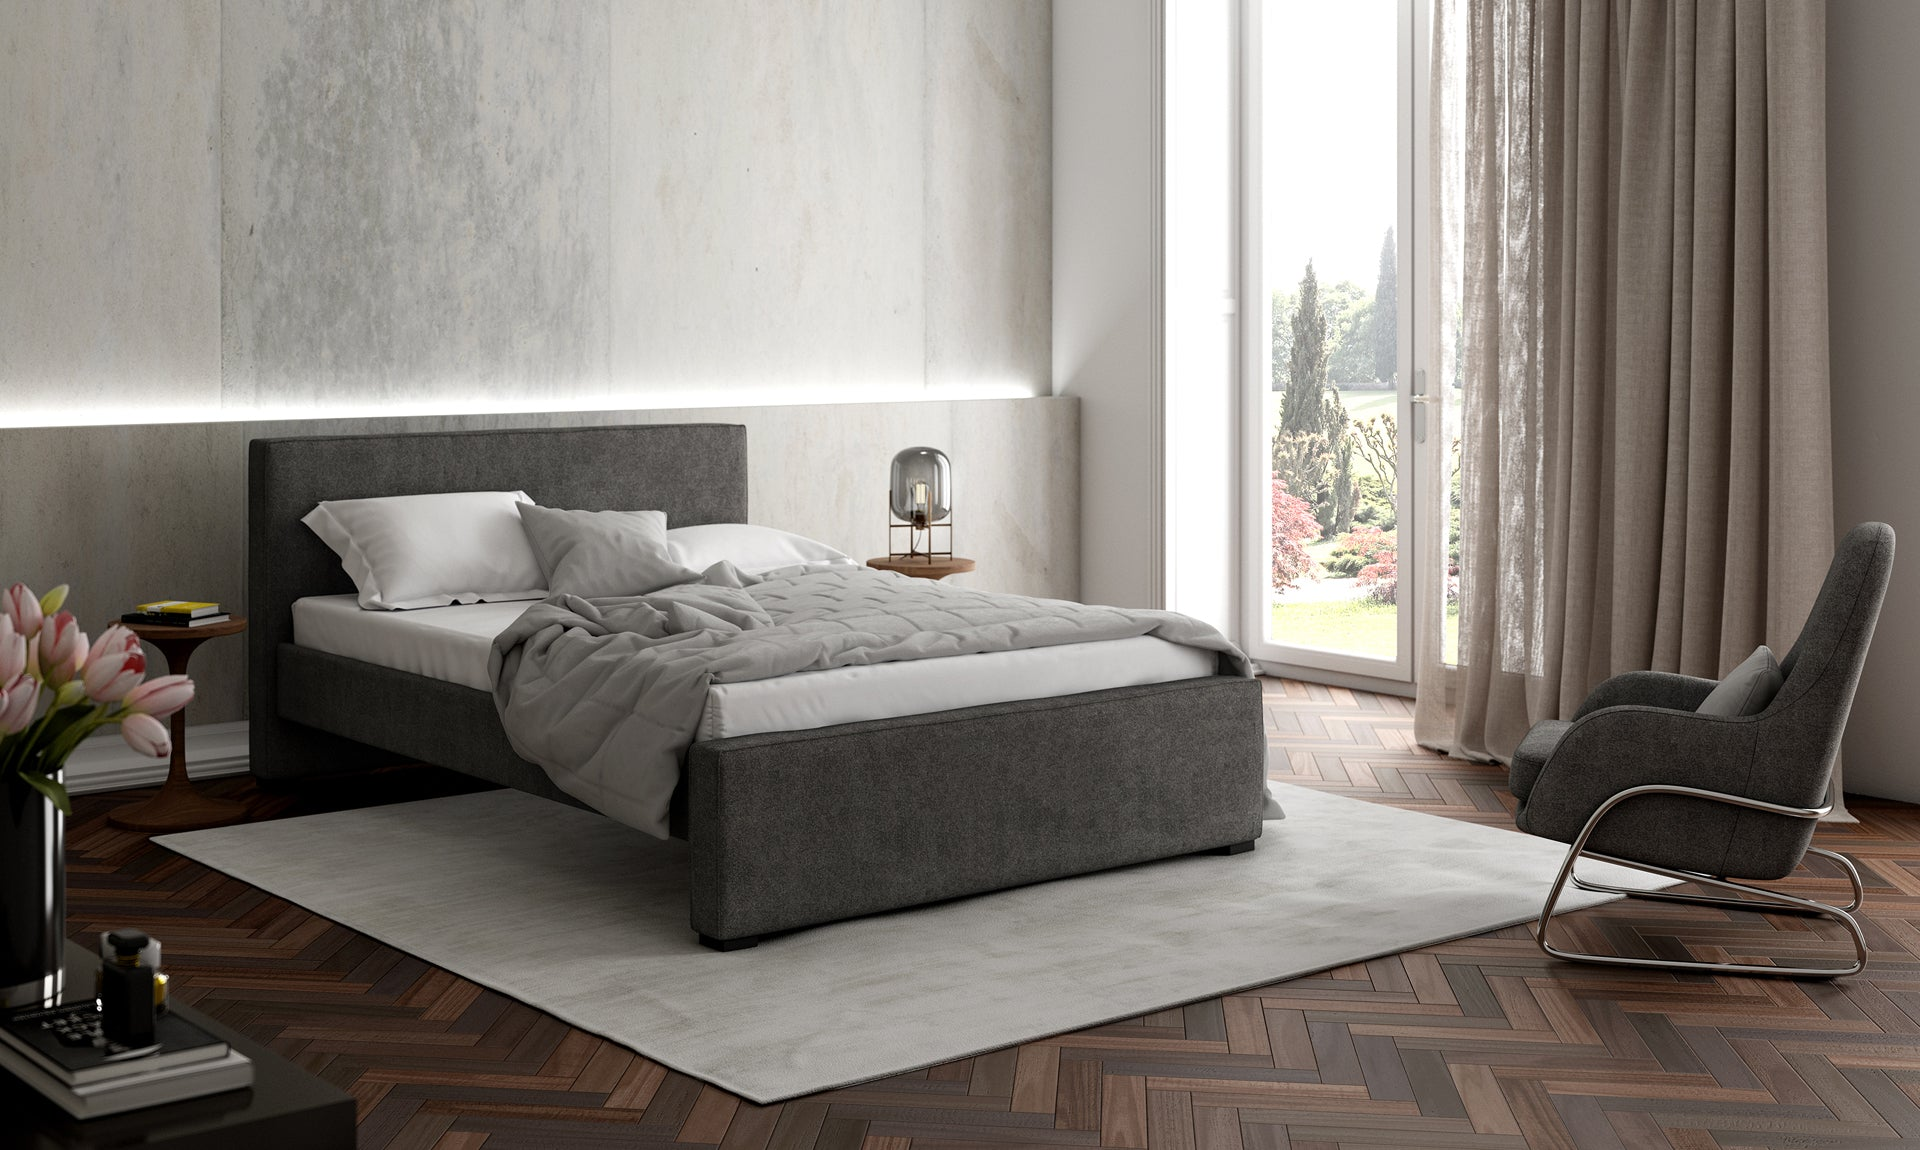 Picture of: Modern Dorma Queen King Bed With Pull Out Trundle By Monte Design